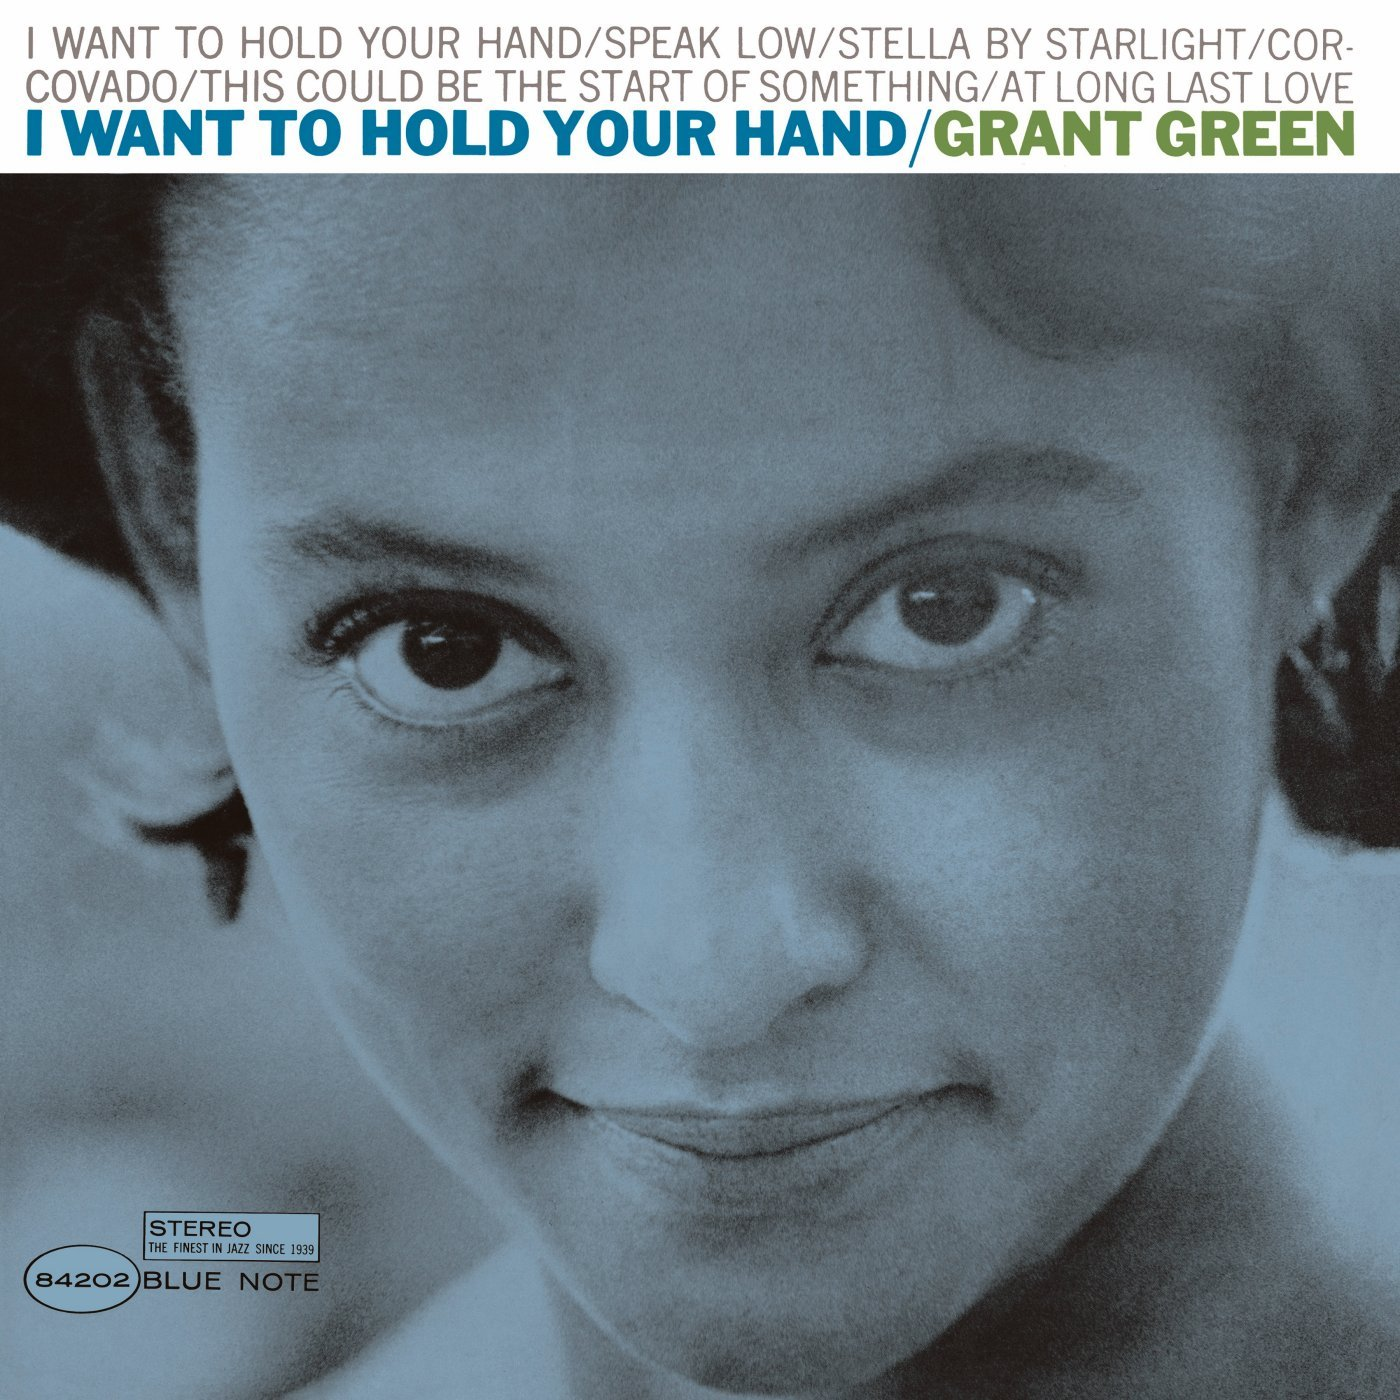 Grant Green - I Want To Hold Your Hand - Amazon.com Music